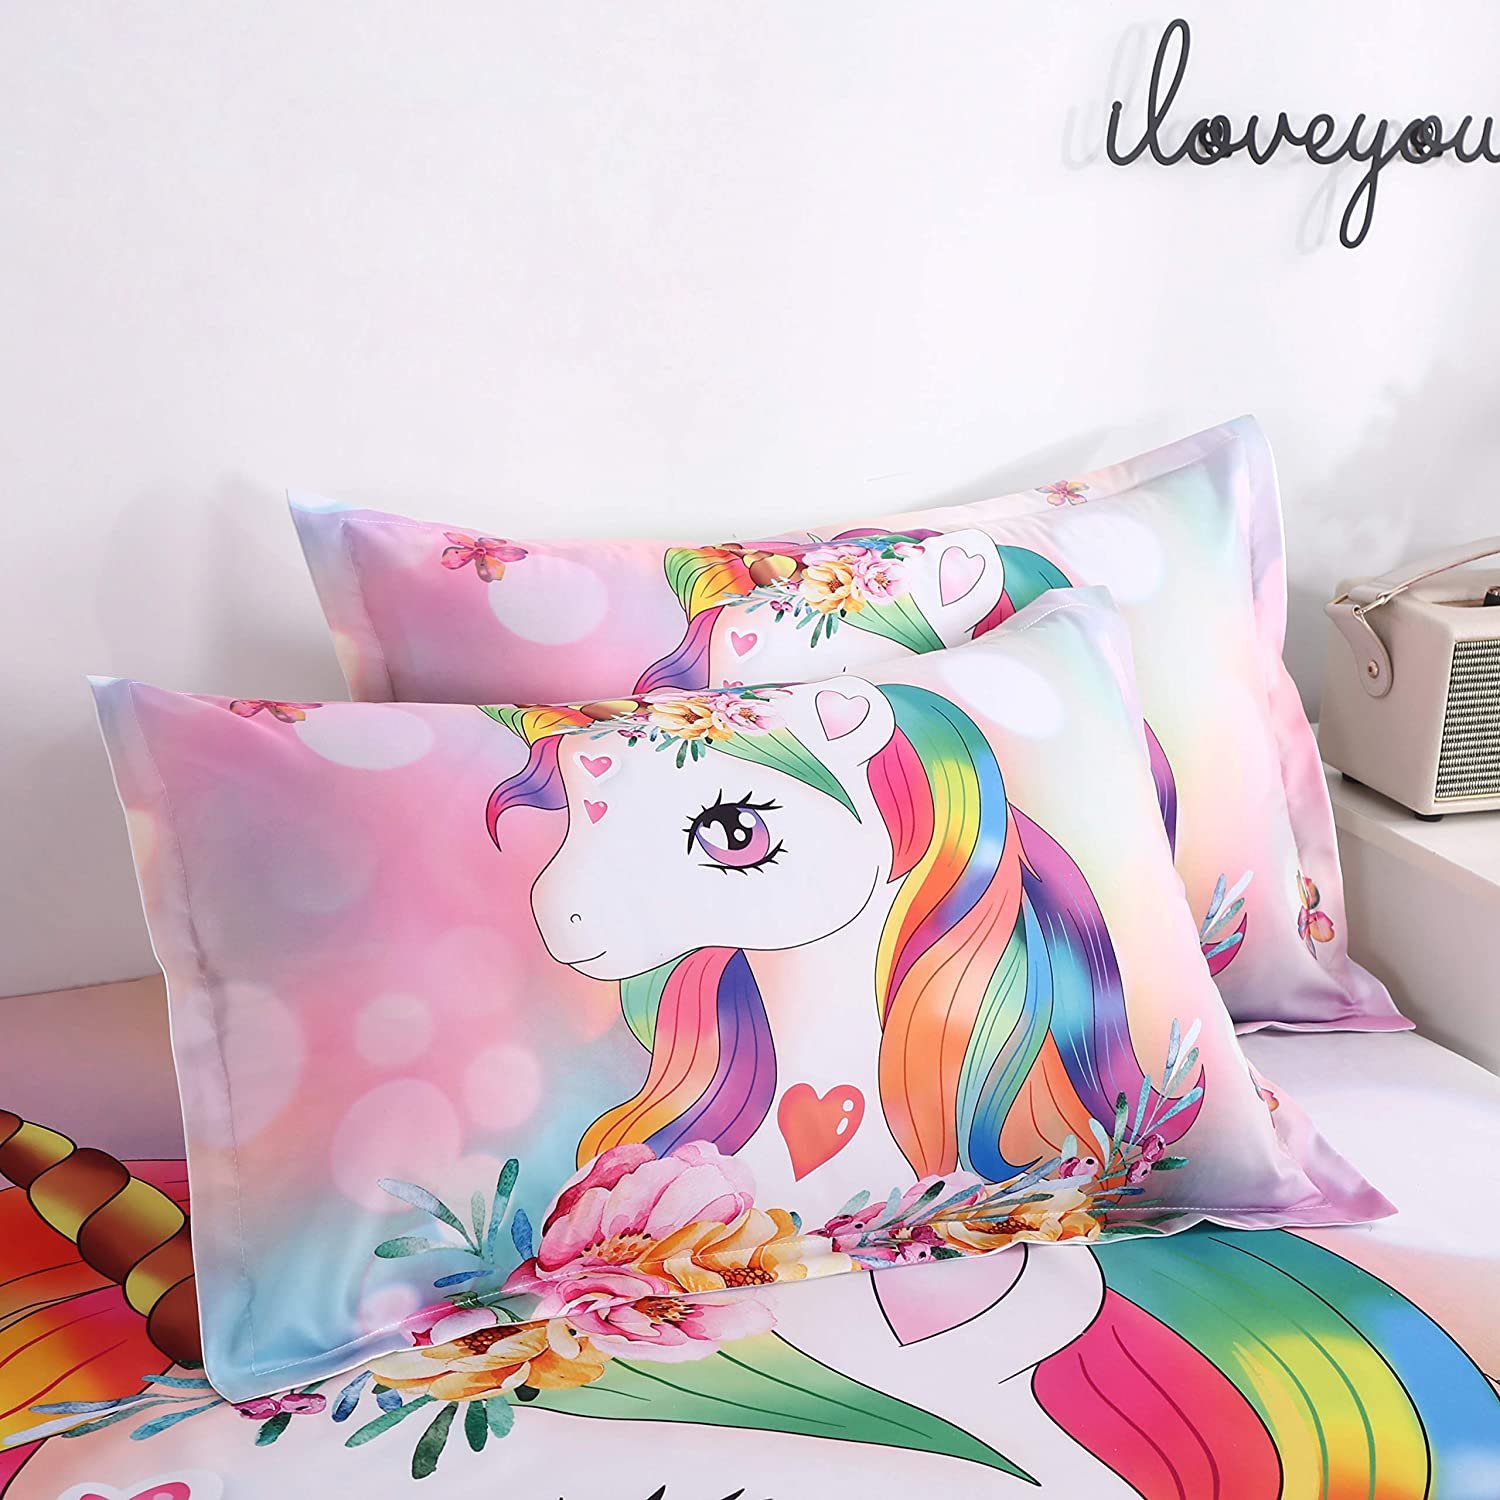 Unicorn Fitted Bed Sheet Set Kids Little Cute Princess Unicorn Soft Microfiber Breathable Bedding All-Round Elastic Pocket 2 Pieces Fitted Sheet Set for Teens and Girls Twin